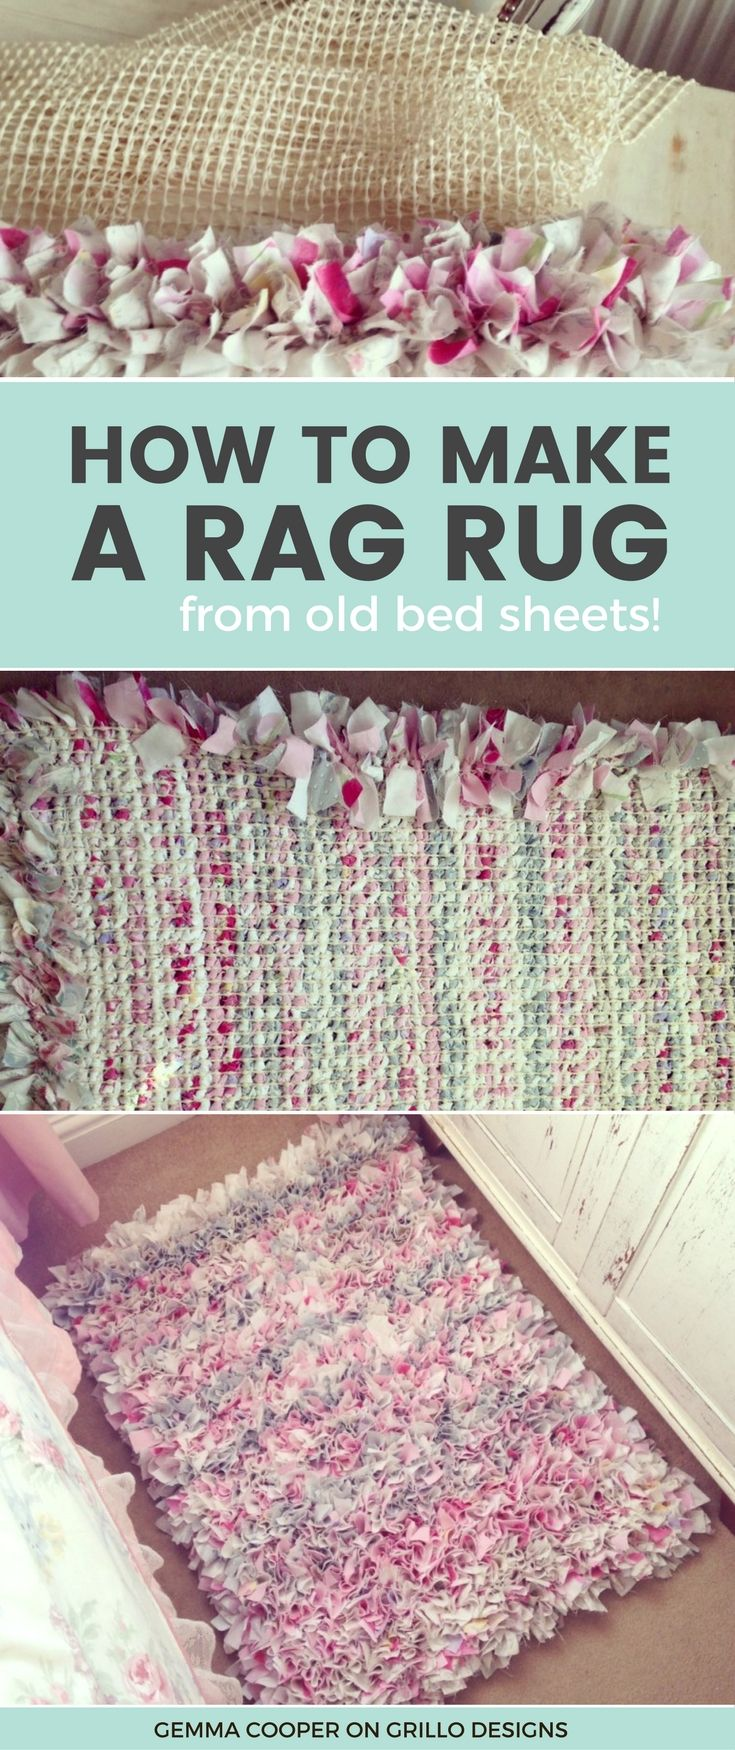 DIY Craft: DIY Rag Rug tutorial - Gemma Cooper shares an easy method on how to create the perfect rag rug for your home. Video tutorial included!